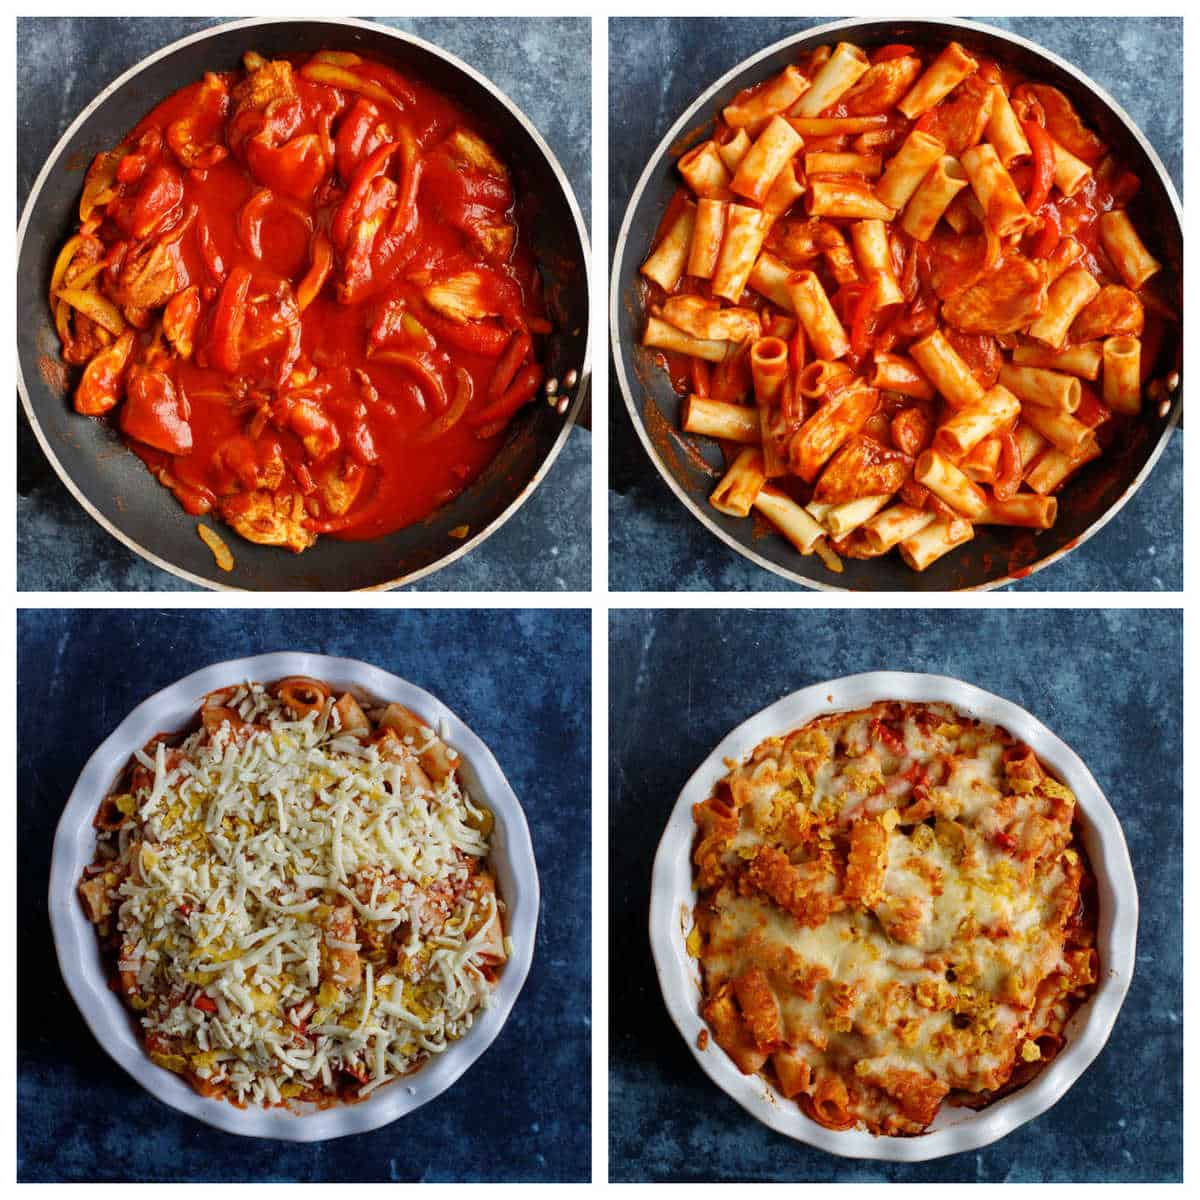 Step by step photo instructions for making fajita pasta bake part 2.